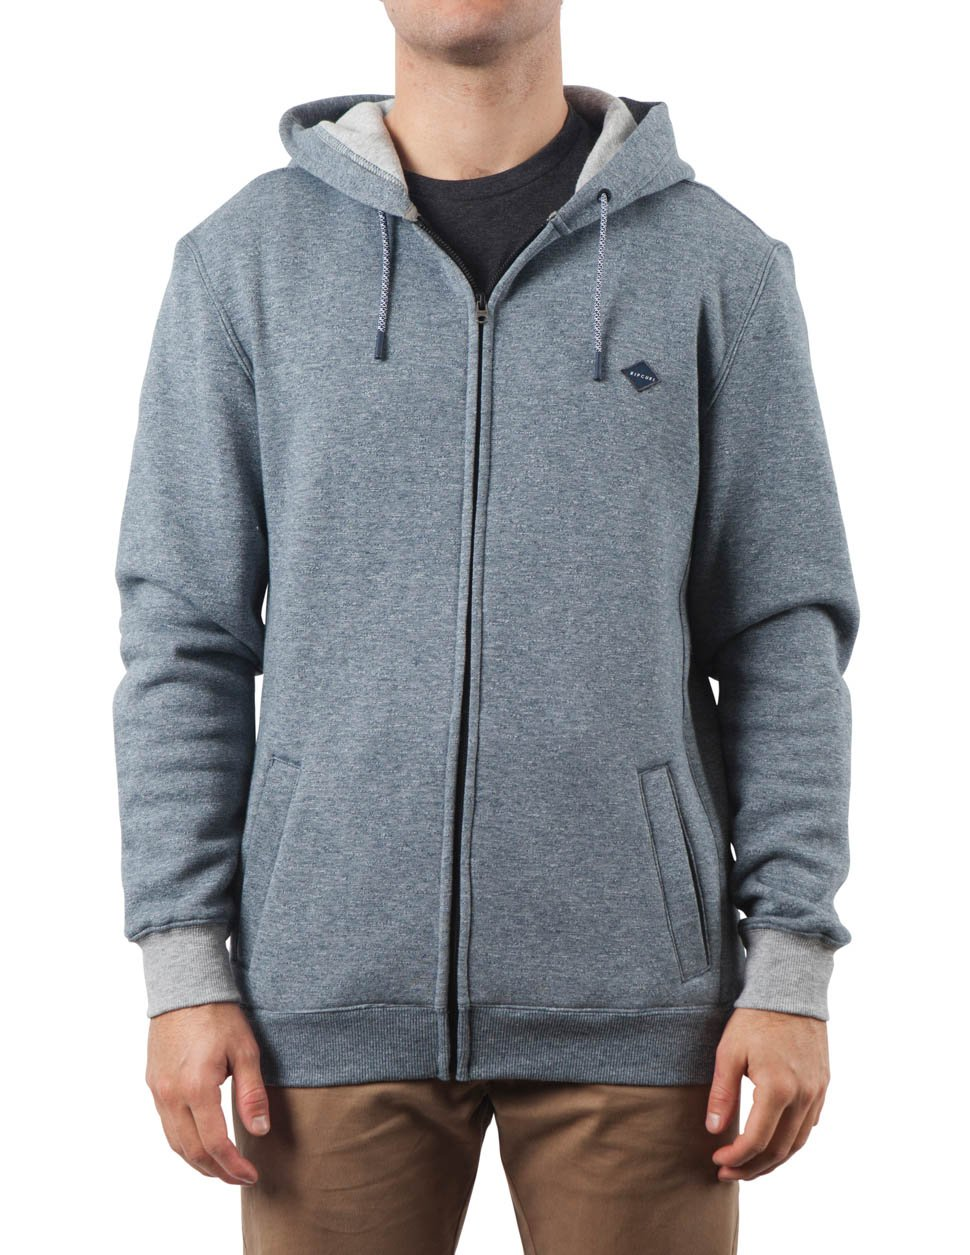 Rip Curl Boys Destination Zip-Up Fleece Navy